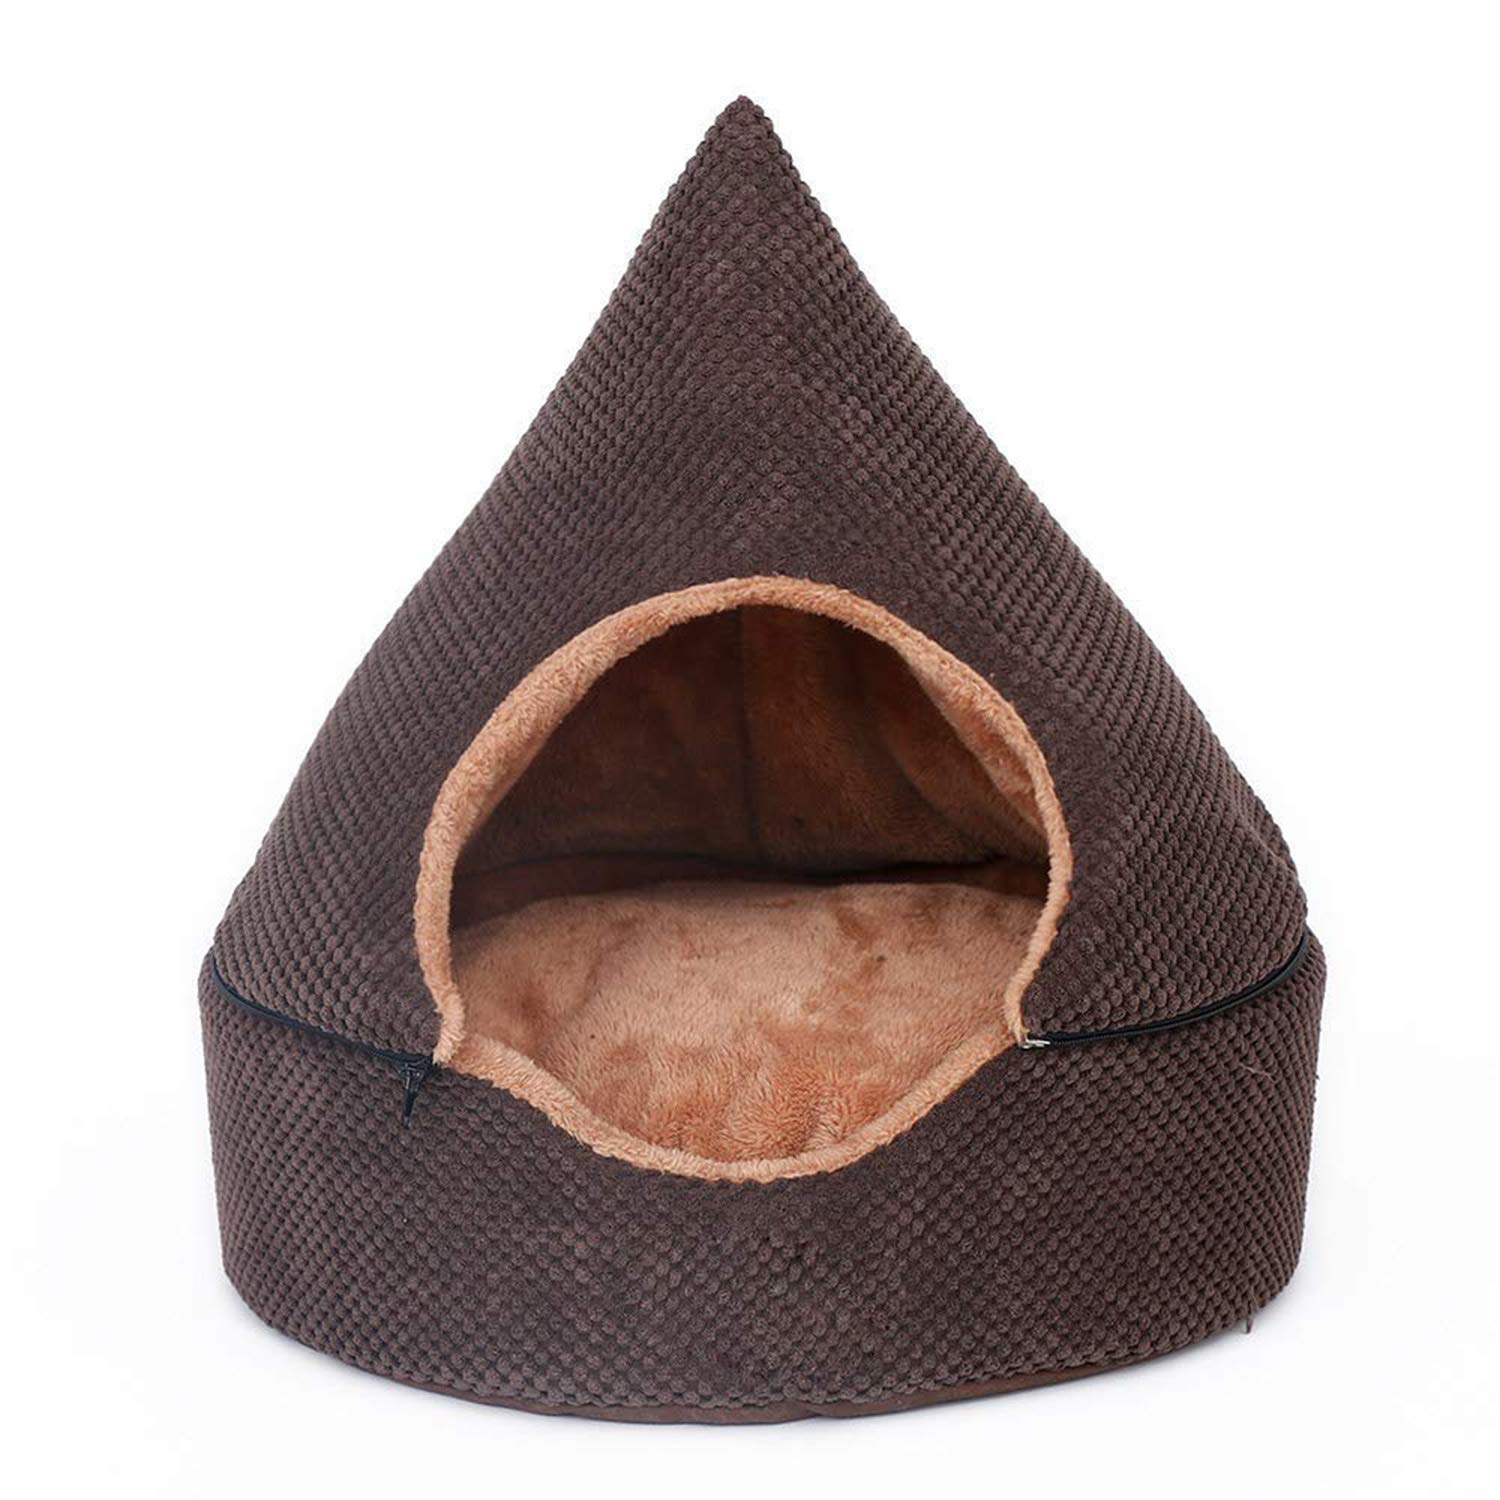 Brown S brown S sgtrehyc SGT® Cat Bed Cave Removable And Washable Four Seasons Windproof Therm